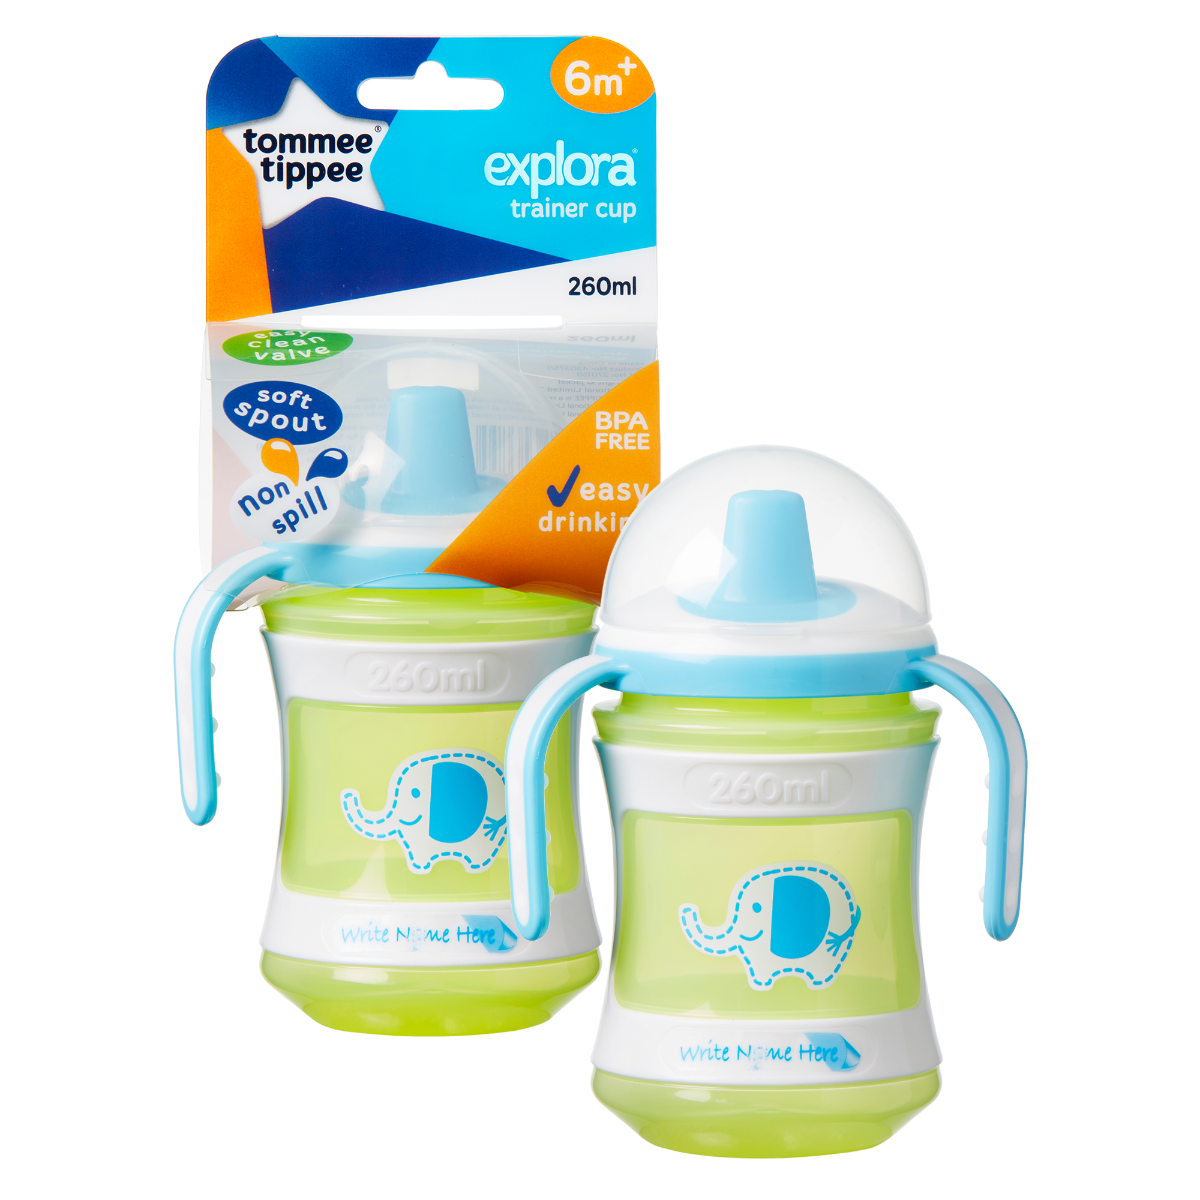 Green and blue Tommee Tippee Explora Training cup in packaging